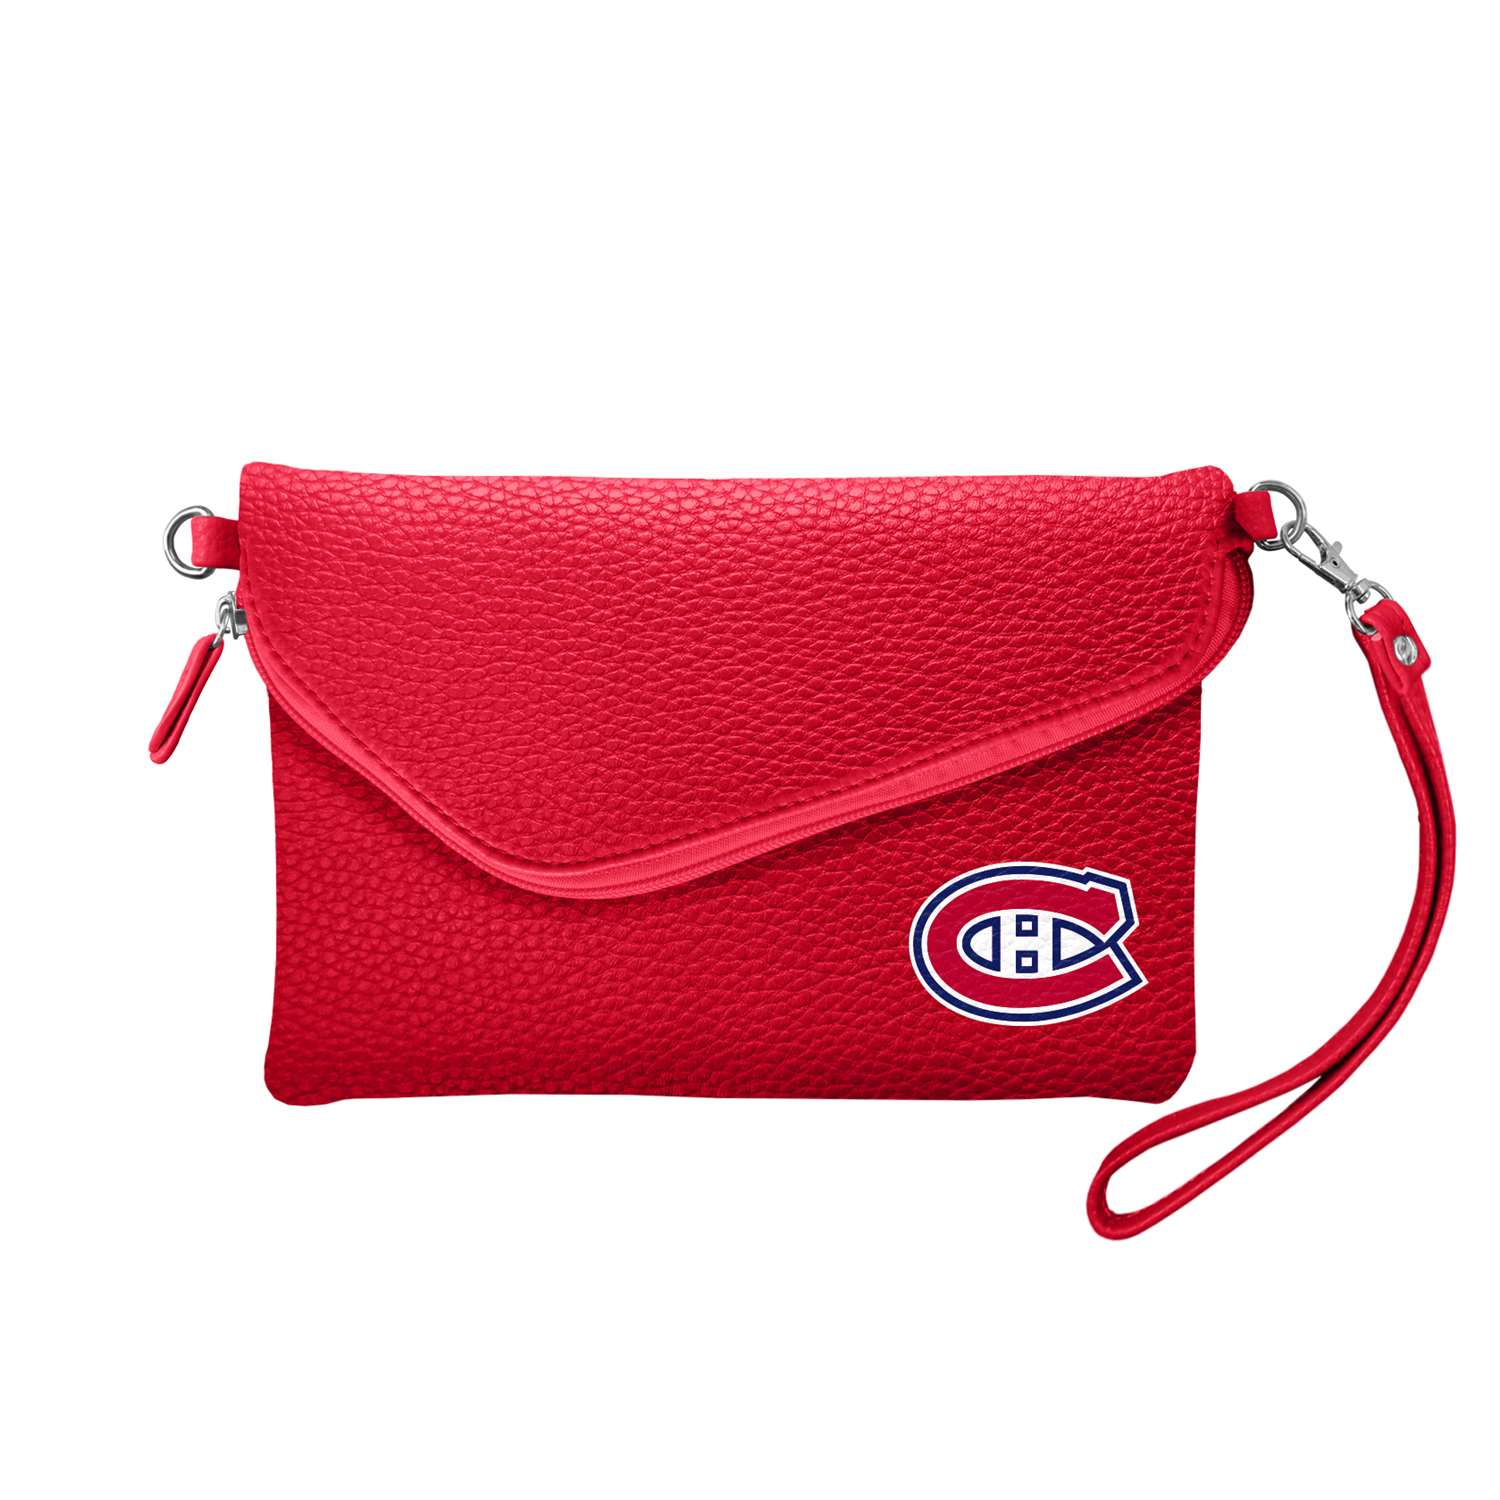 Nhl Hockey Montreal Canadiens Bath - 500432-cand-lred - Montreal Canadiens Fold Over Crossbody Pebble 500432-CAND-LRED